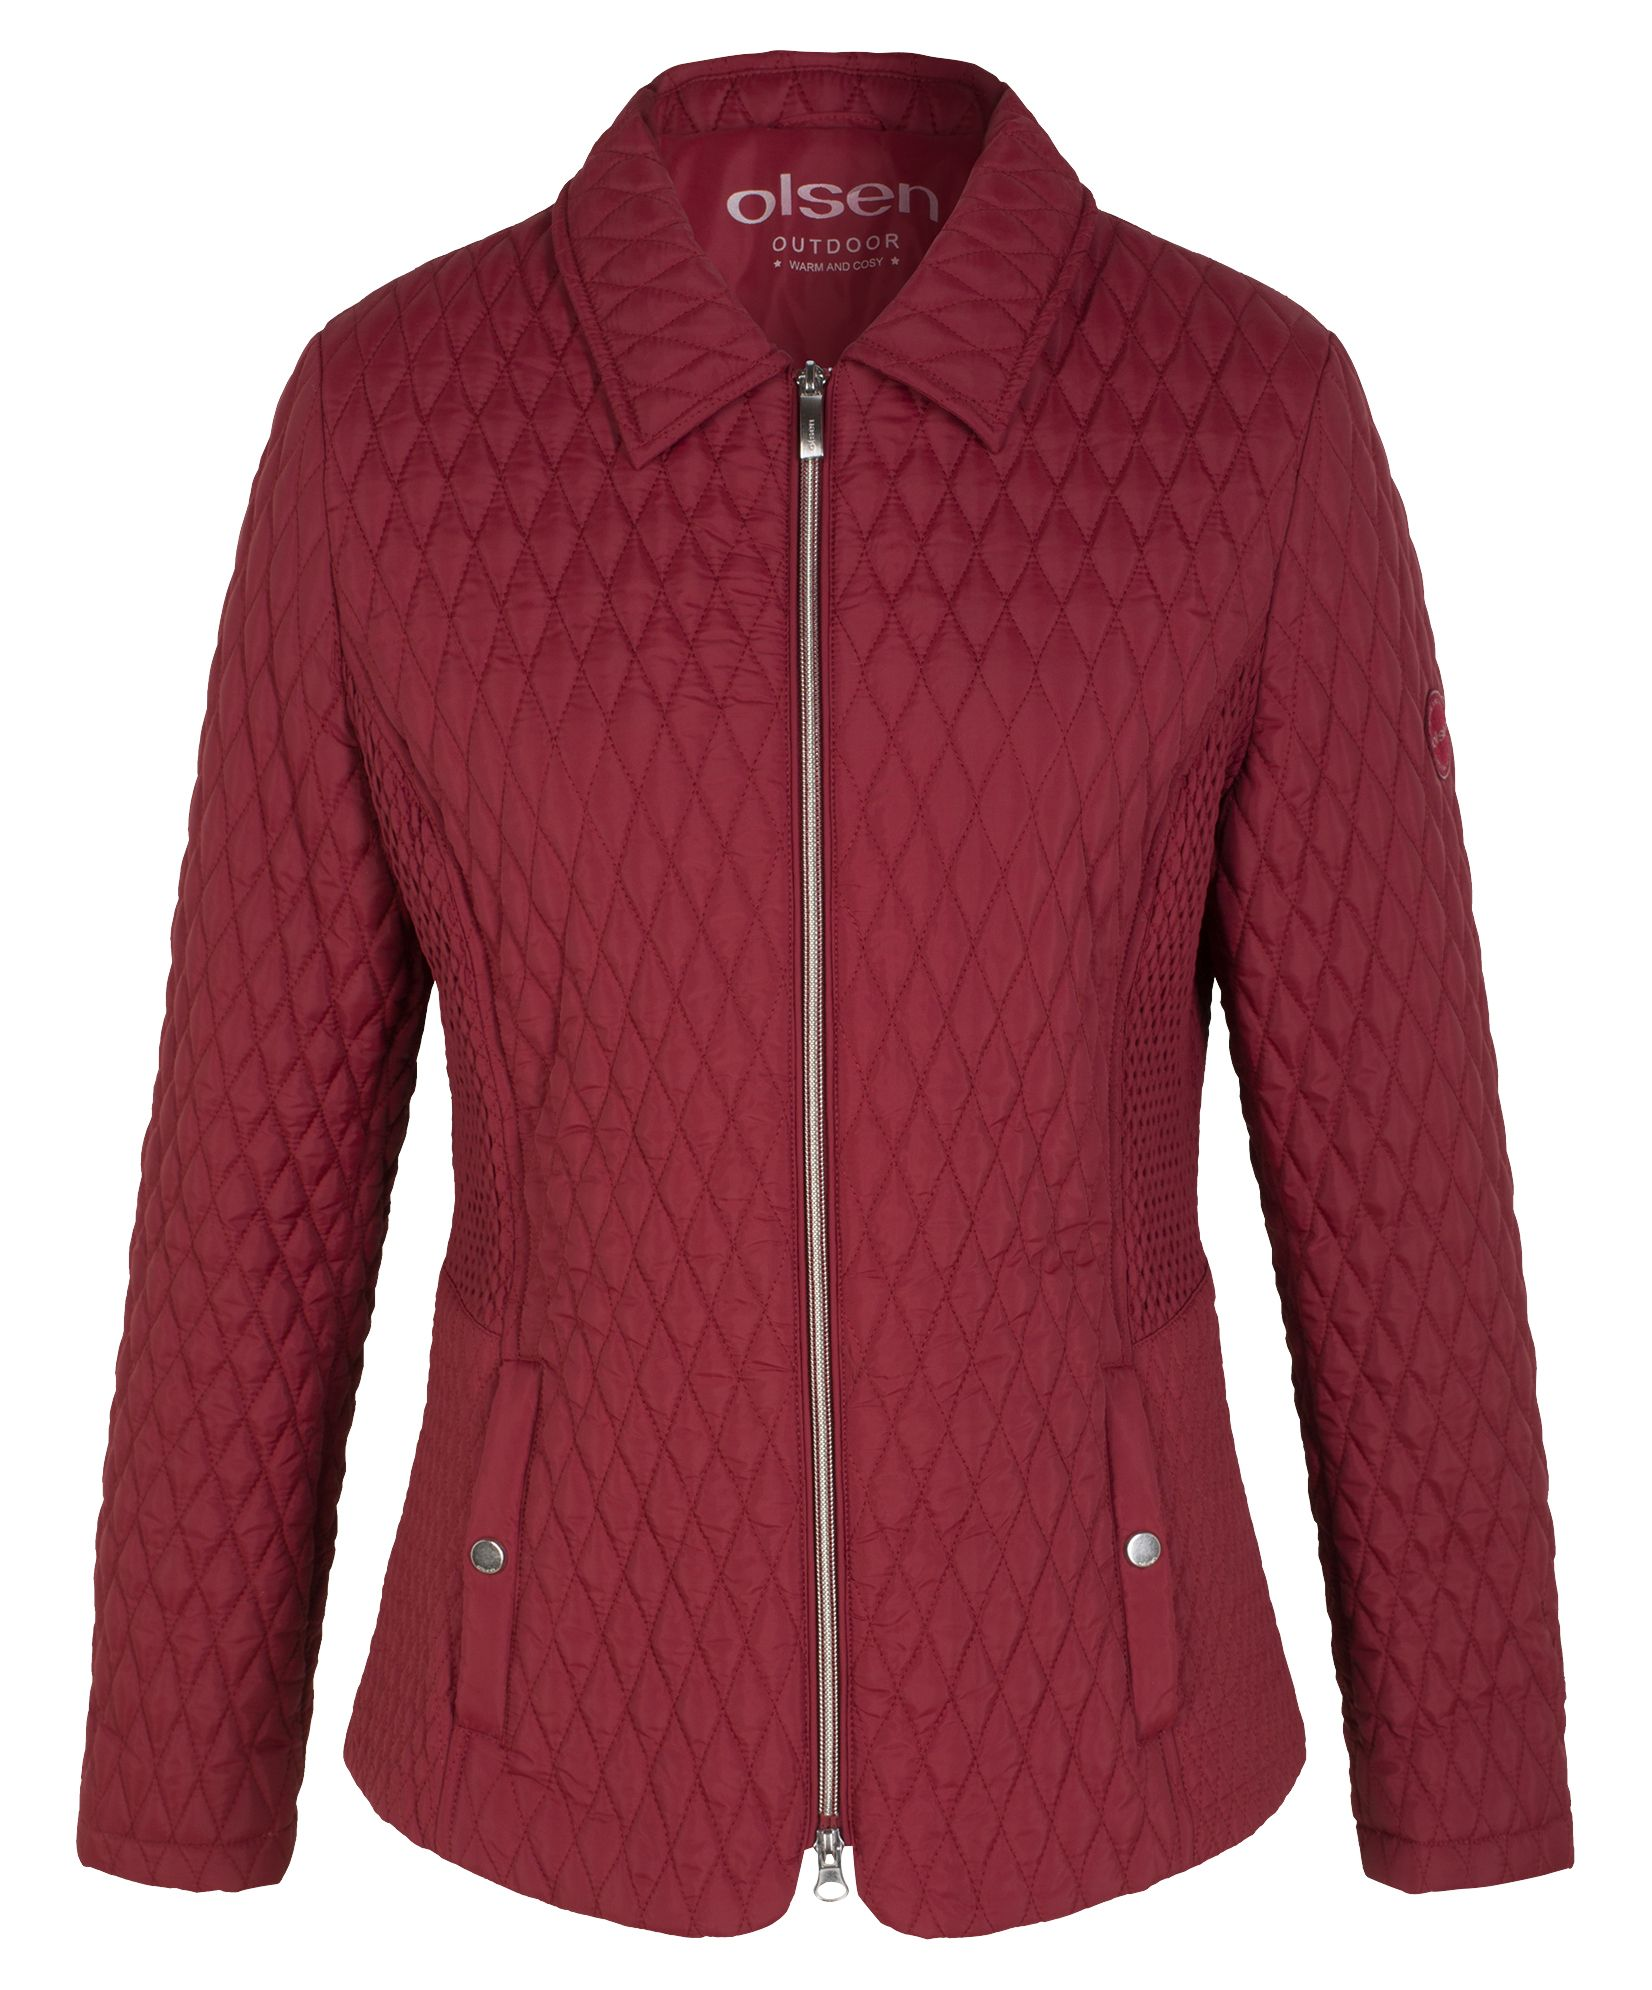 Olsen Jacket Outdoor, Red